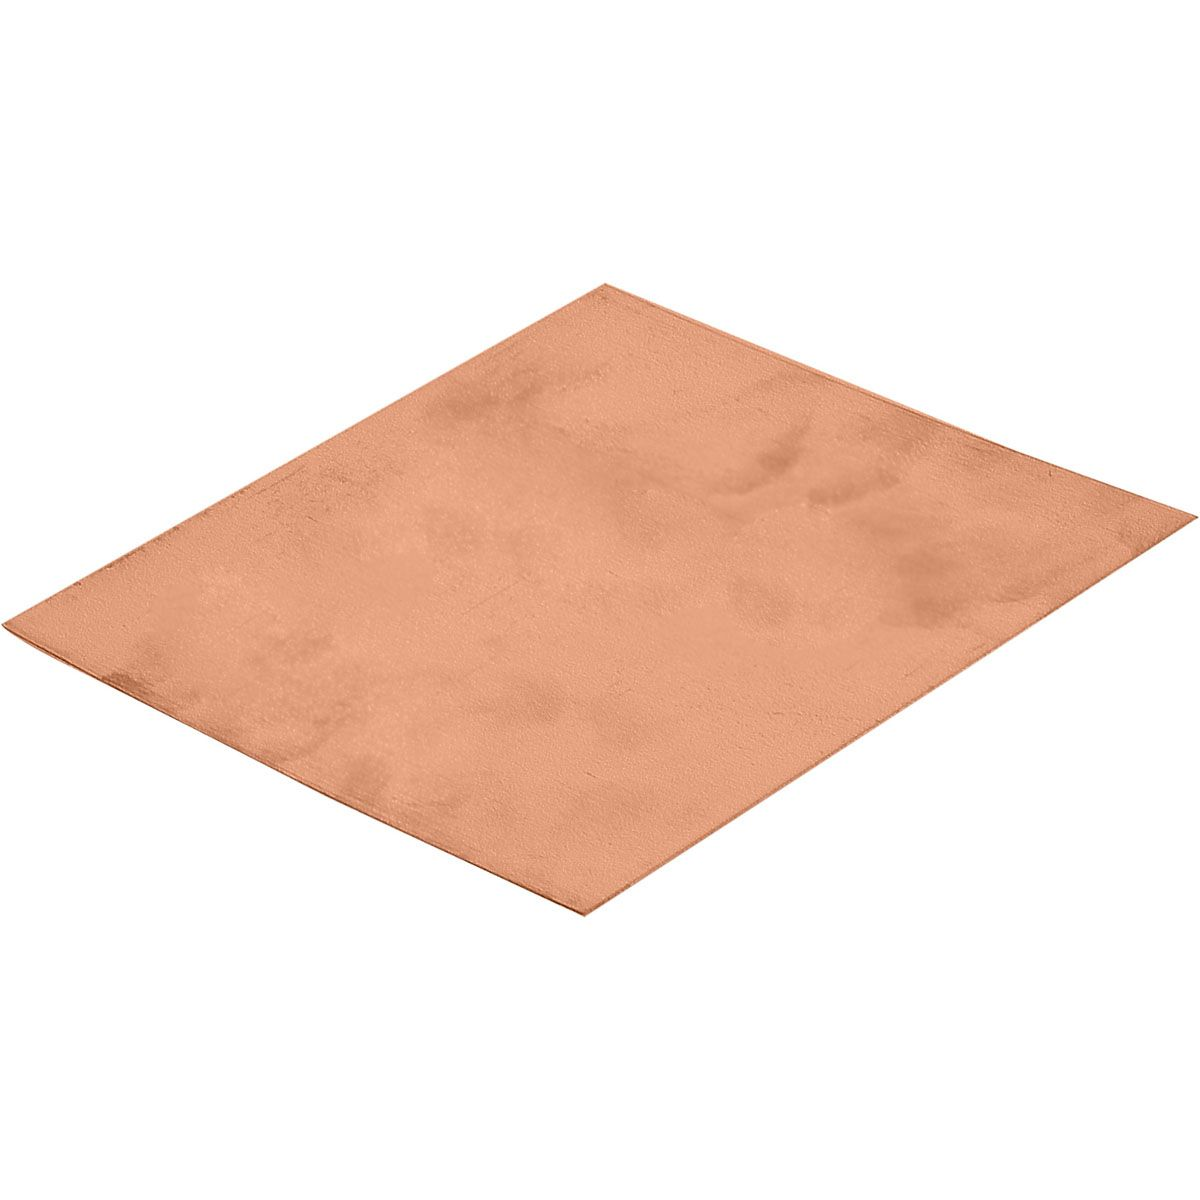 Copper Sheet 24 Gauge 6x6 Copper Sheets Sheet Metal Copper